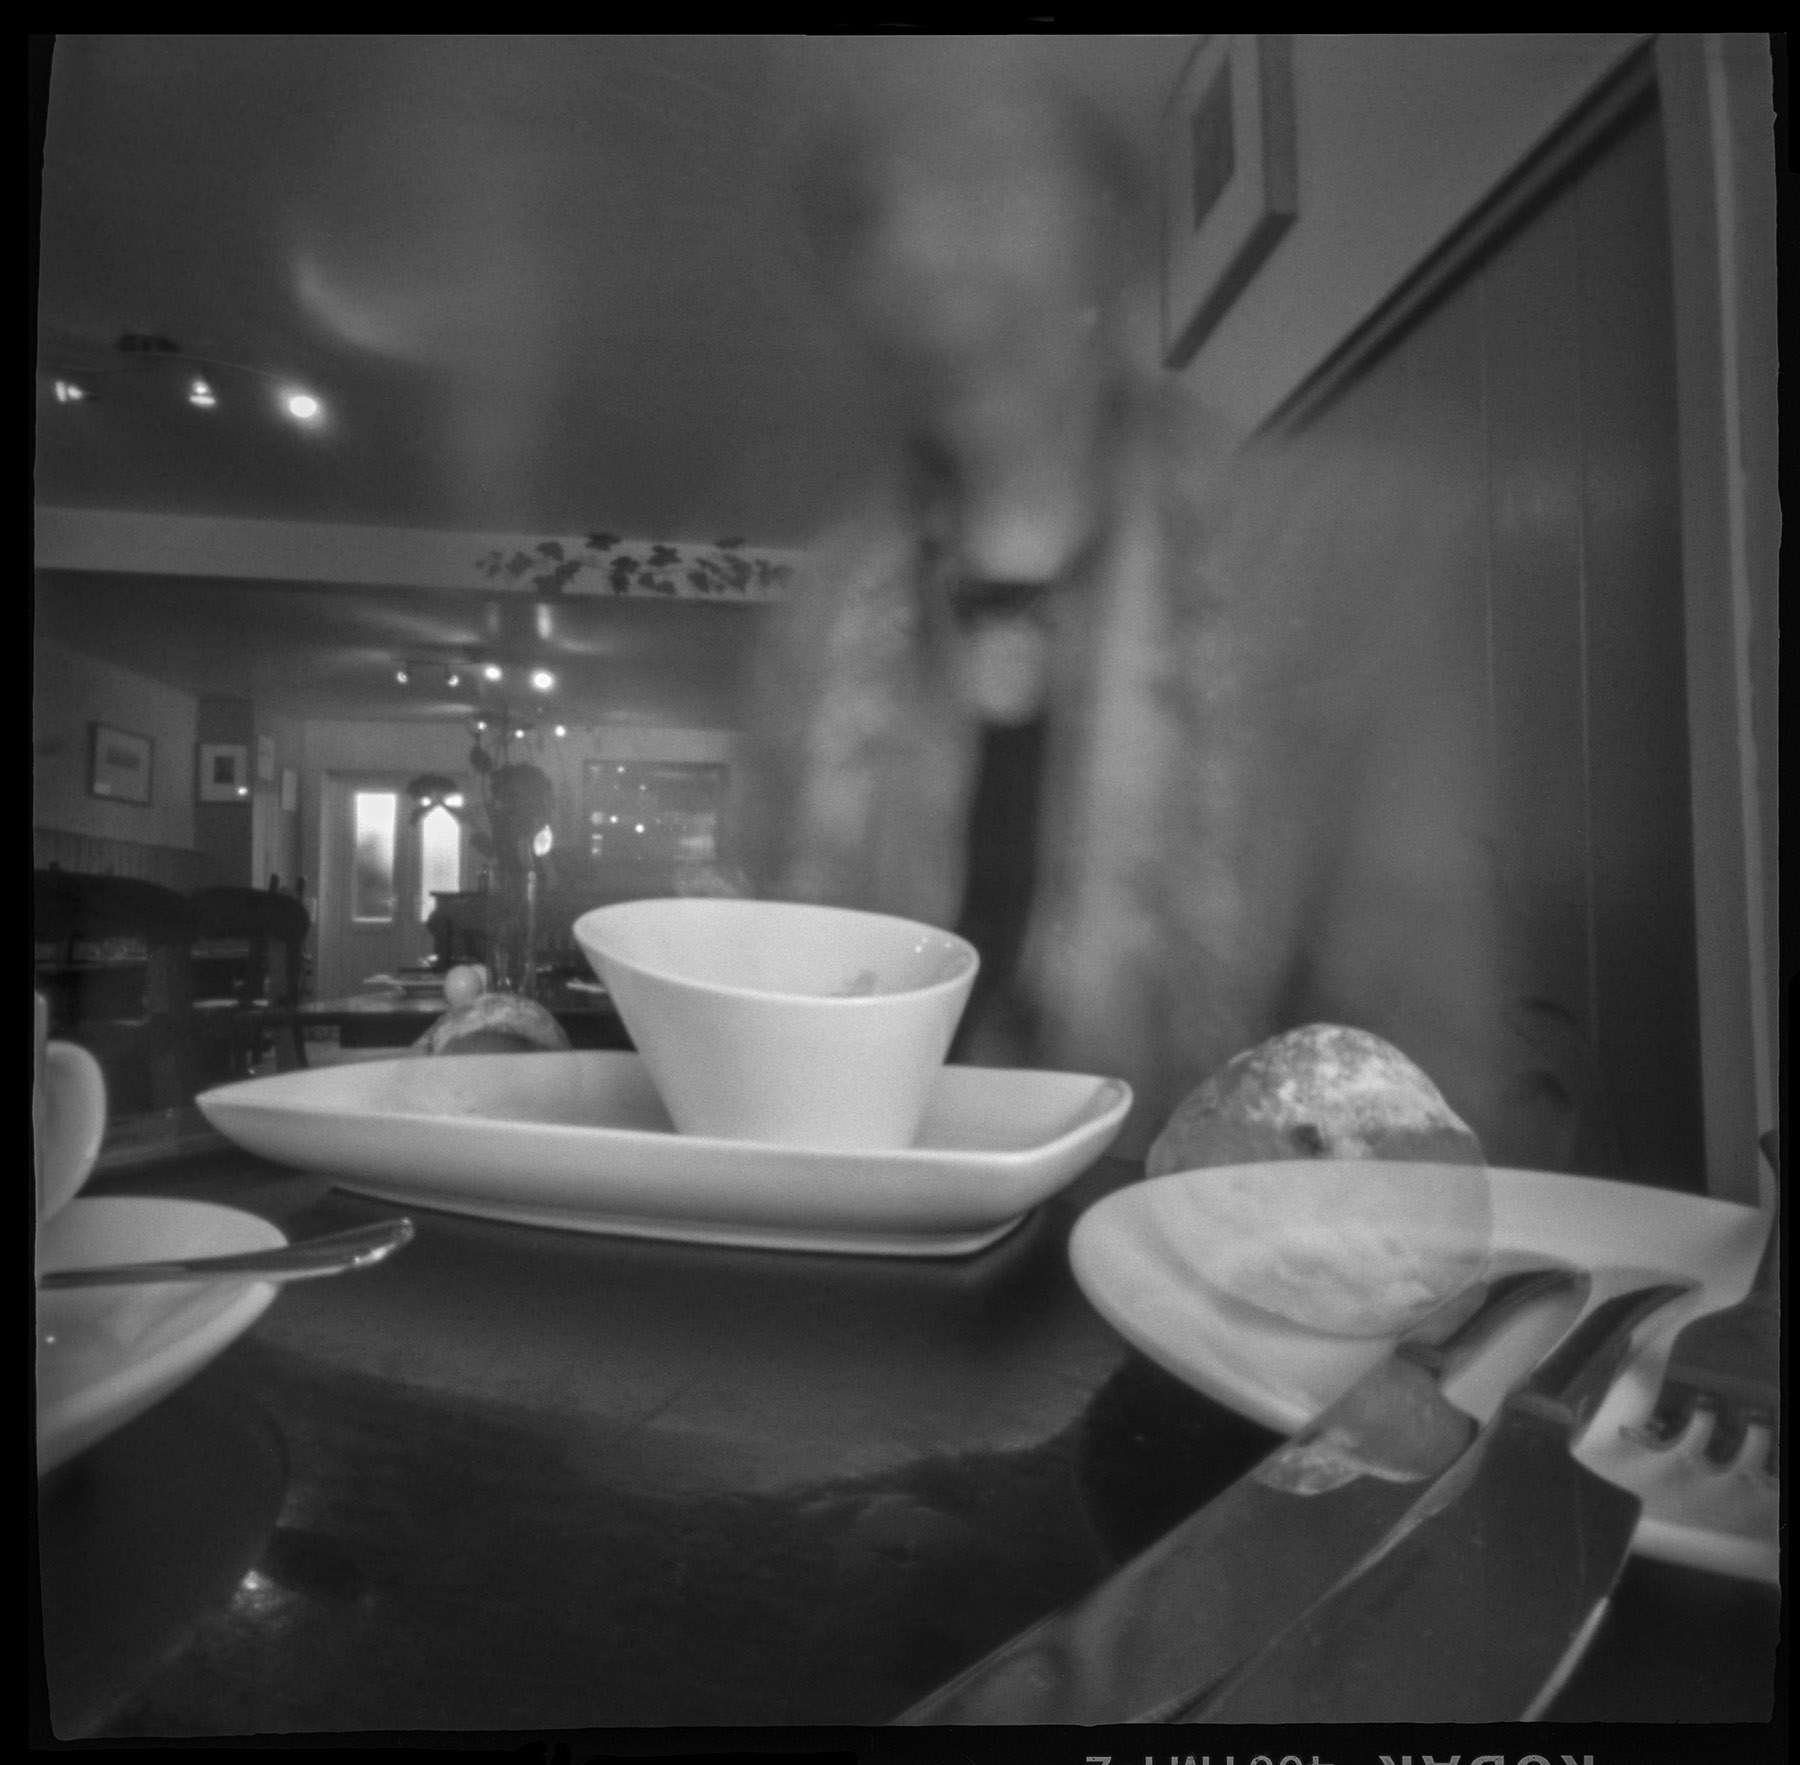 Nancy_Breslin_Pinhole Diary of Eating Out_6-6-17 Lunch at The Herb Pot Ashurst England 25seconds_1.jpg